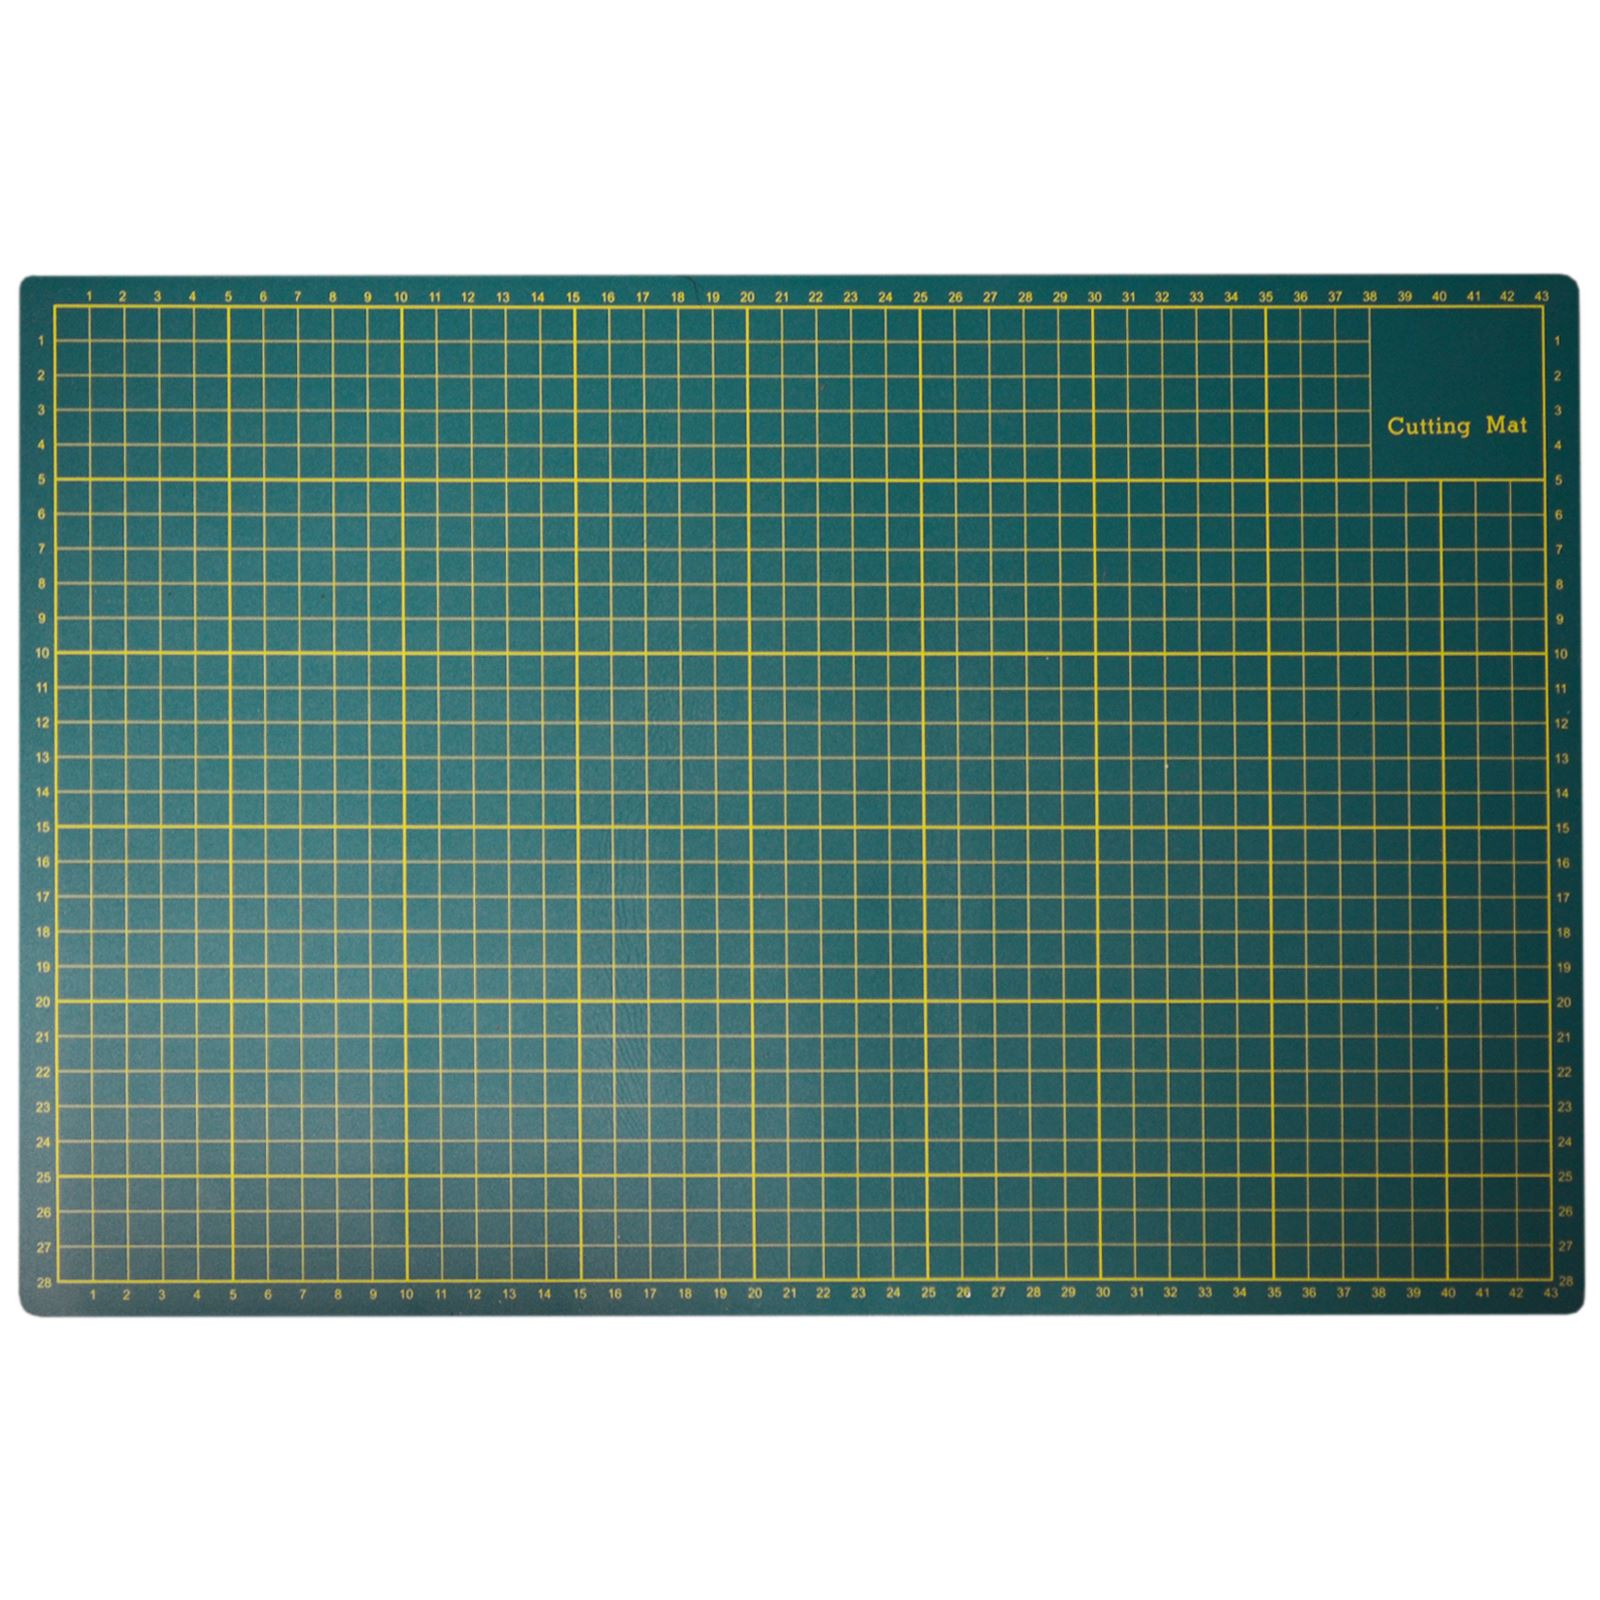 A2 a3 a4 cutting mat non slip printed grid lines knife for Cutting mat for crafts